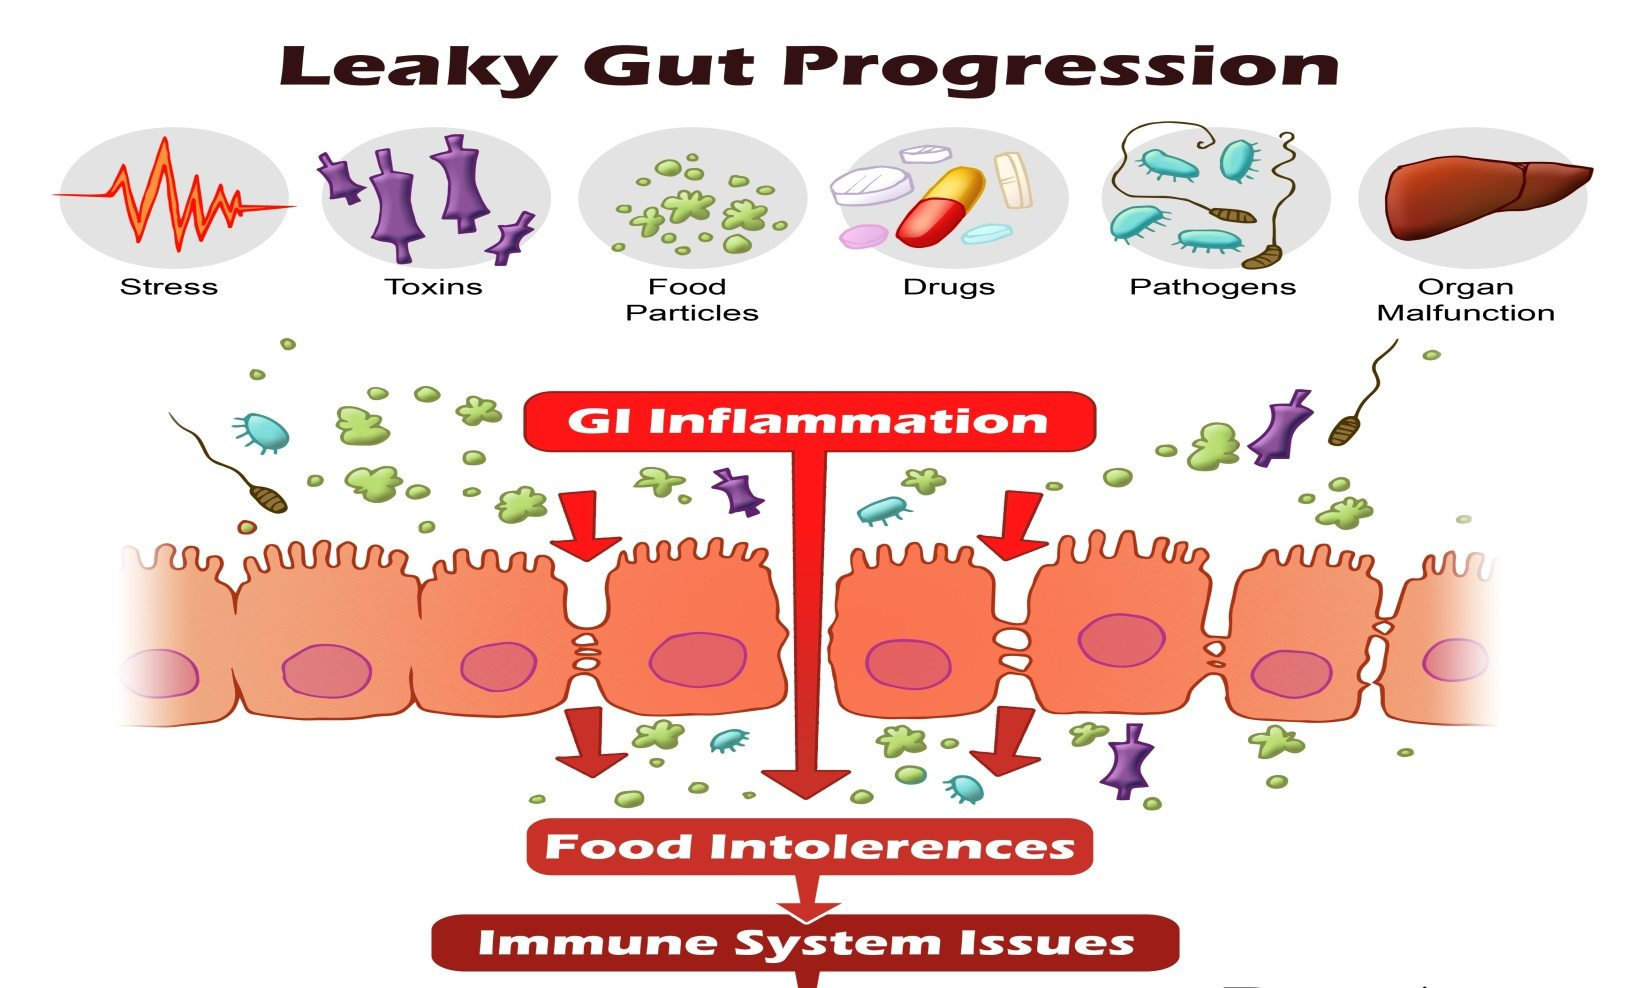 Causes of Leaky Gut Syndrome and Its Progression